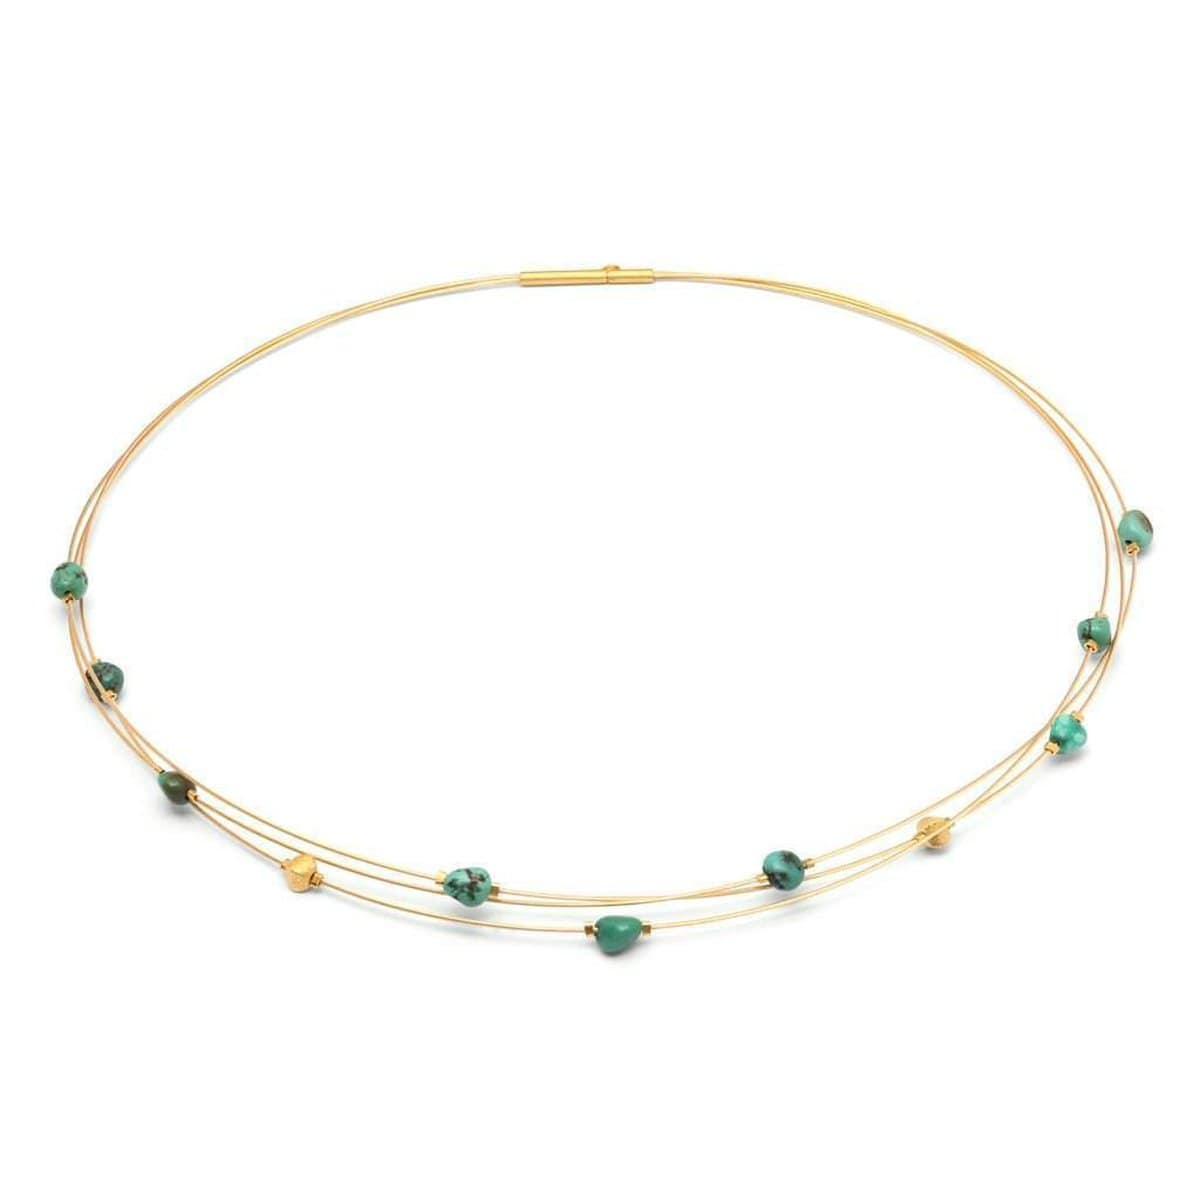 Lapona Green Turquoise Necklace - 85336356-Bernd Wolf-Renee Taylor Gallery